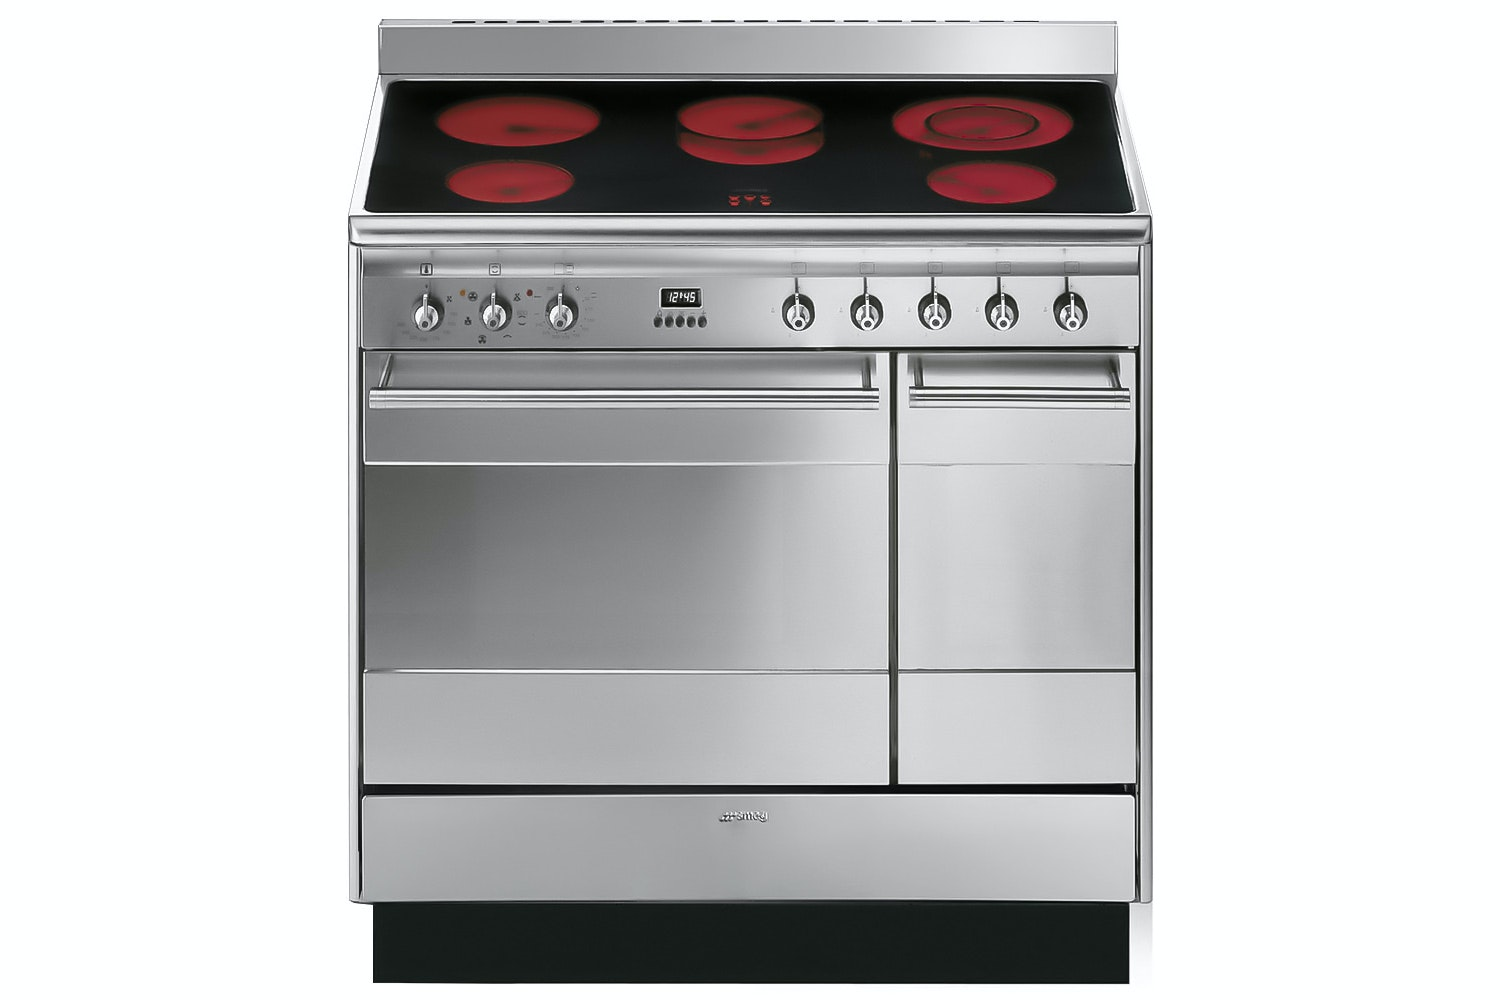 Smeg 90cm Electric Range Cooker | SUK92CMX9 | Stainless Steel